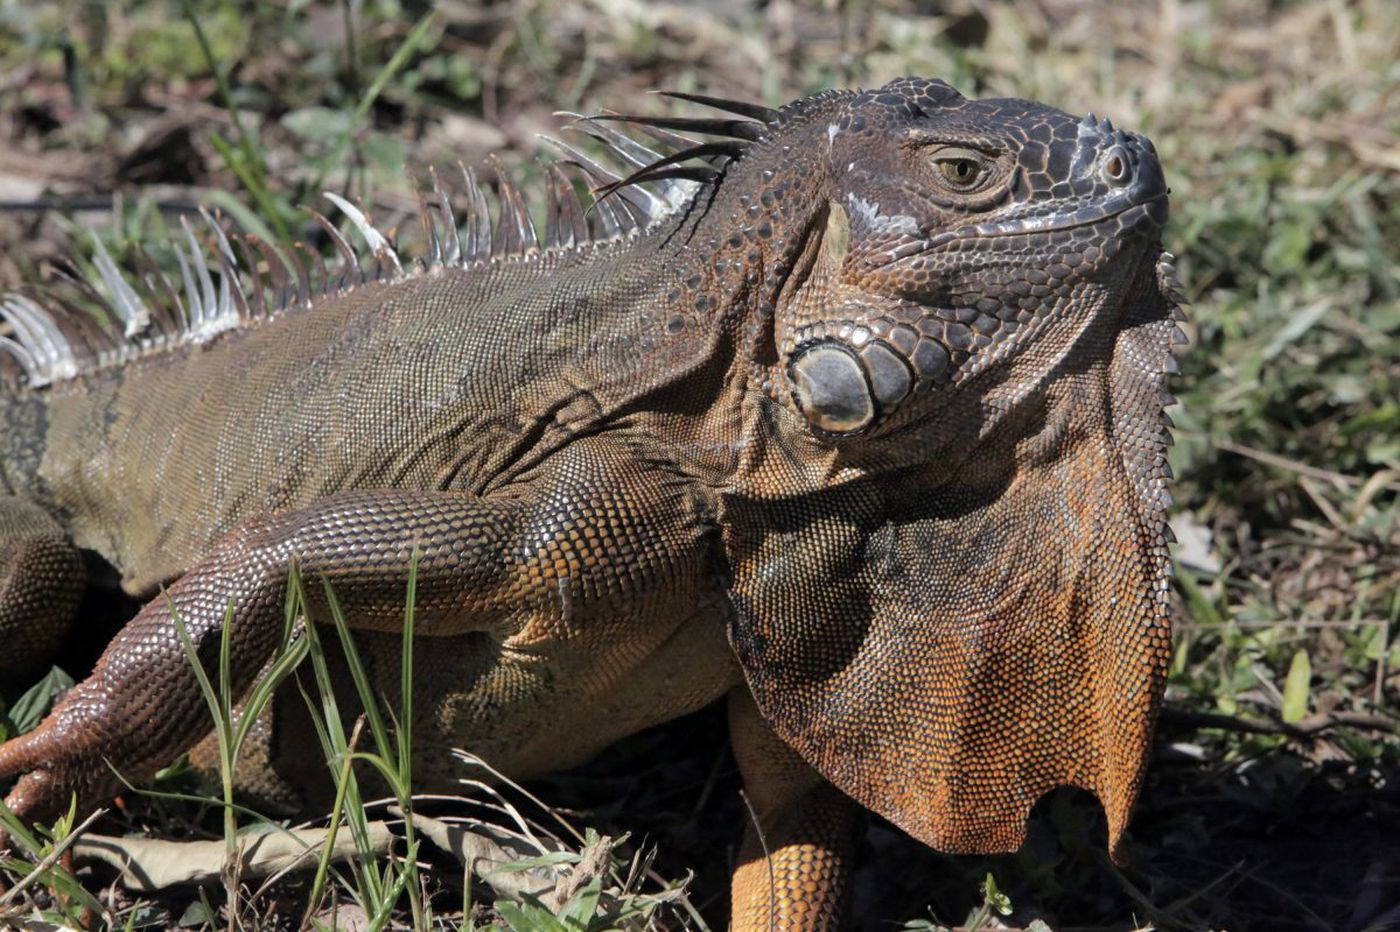 Iguanas are falling out of trees in Florida because it's so cold